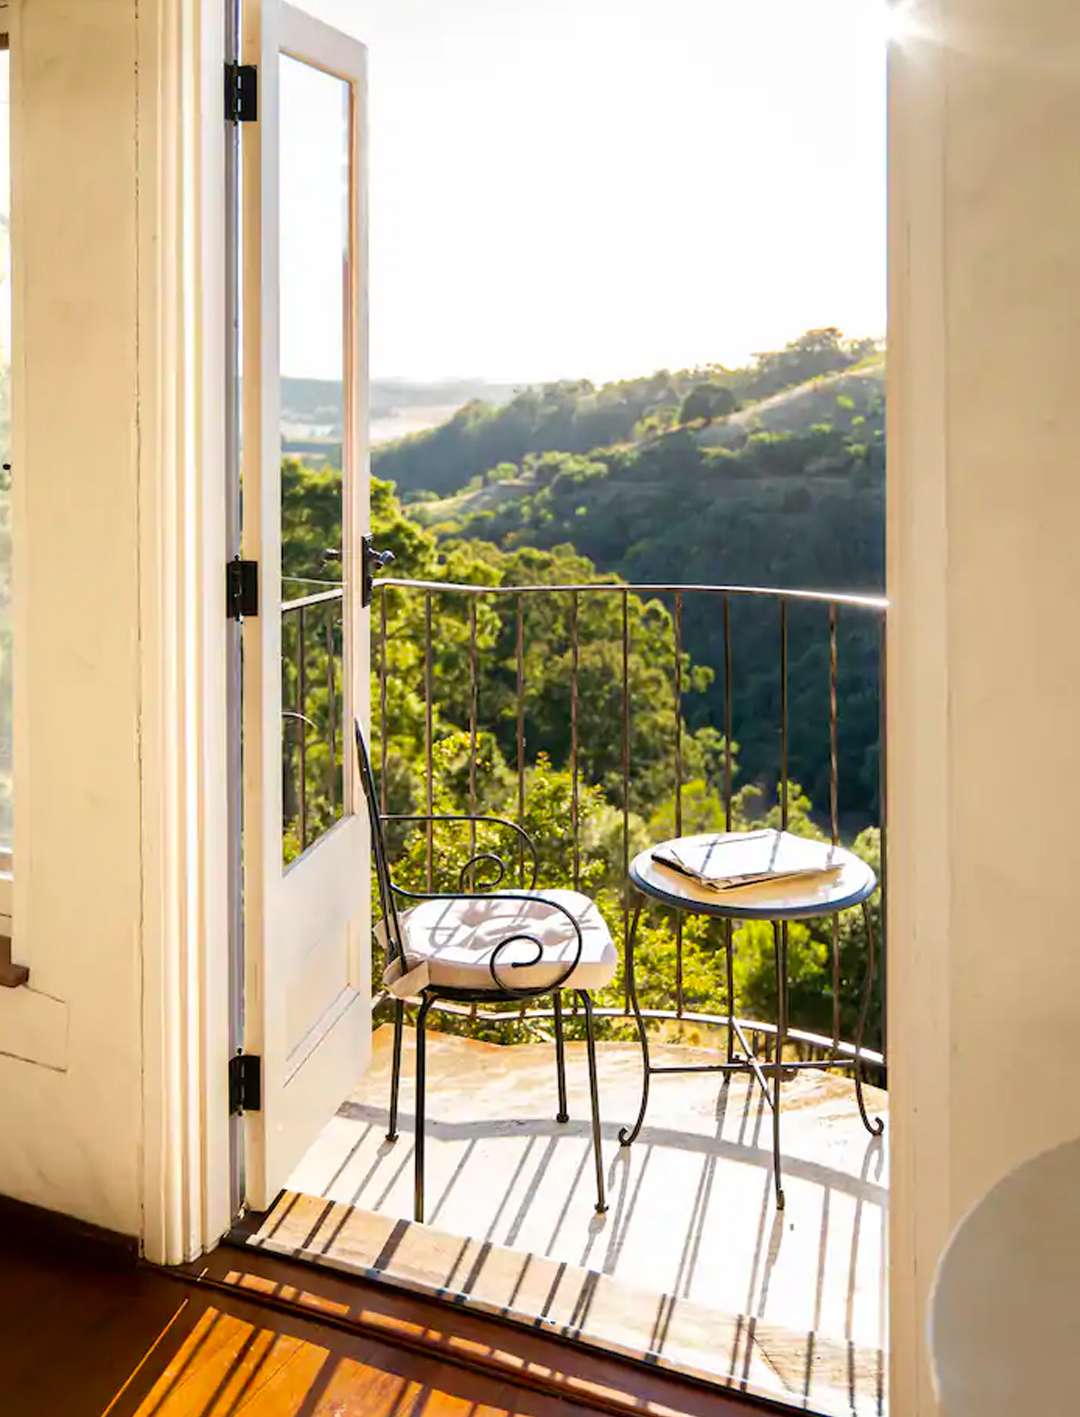 window of amelies cottage overlooking valley in blue mountains